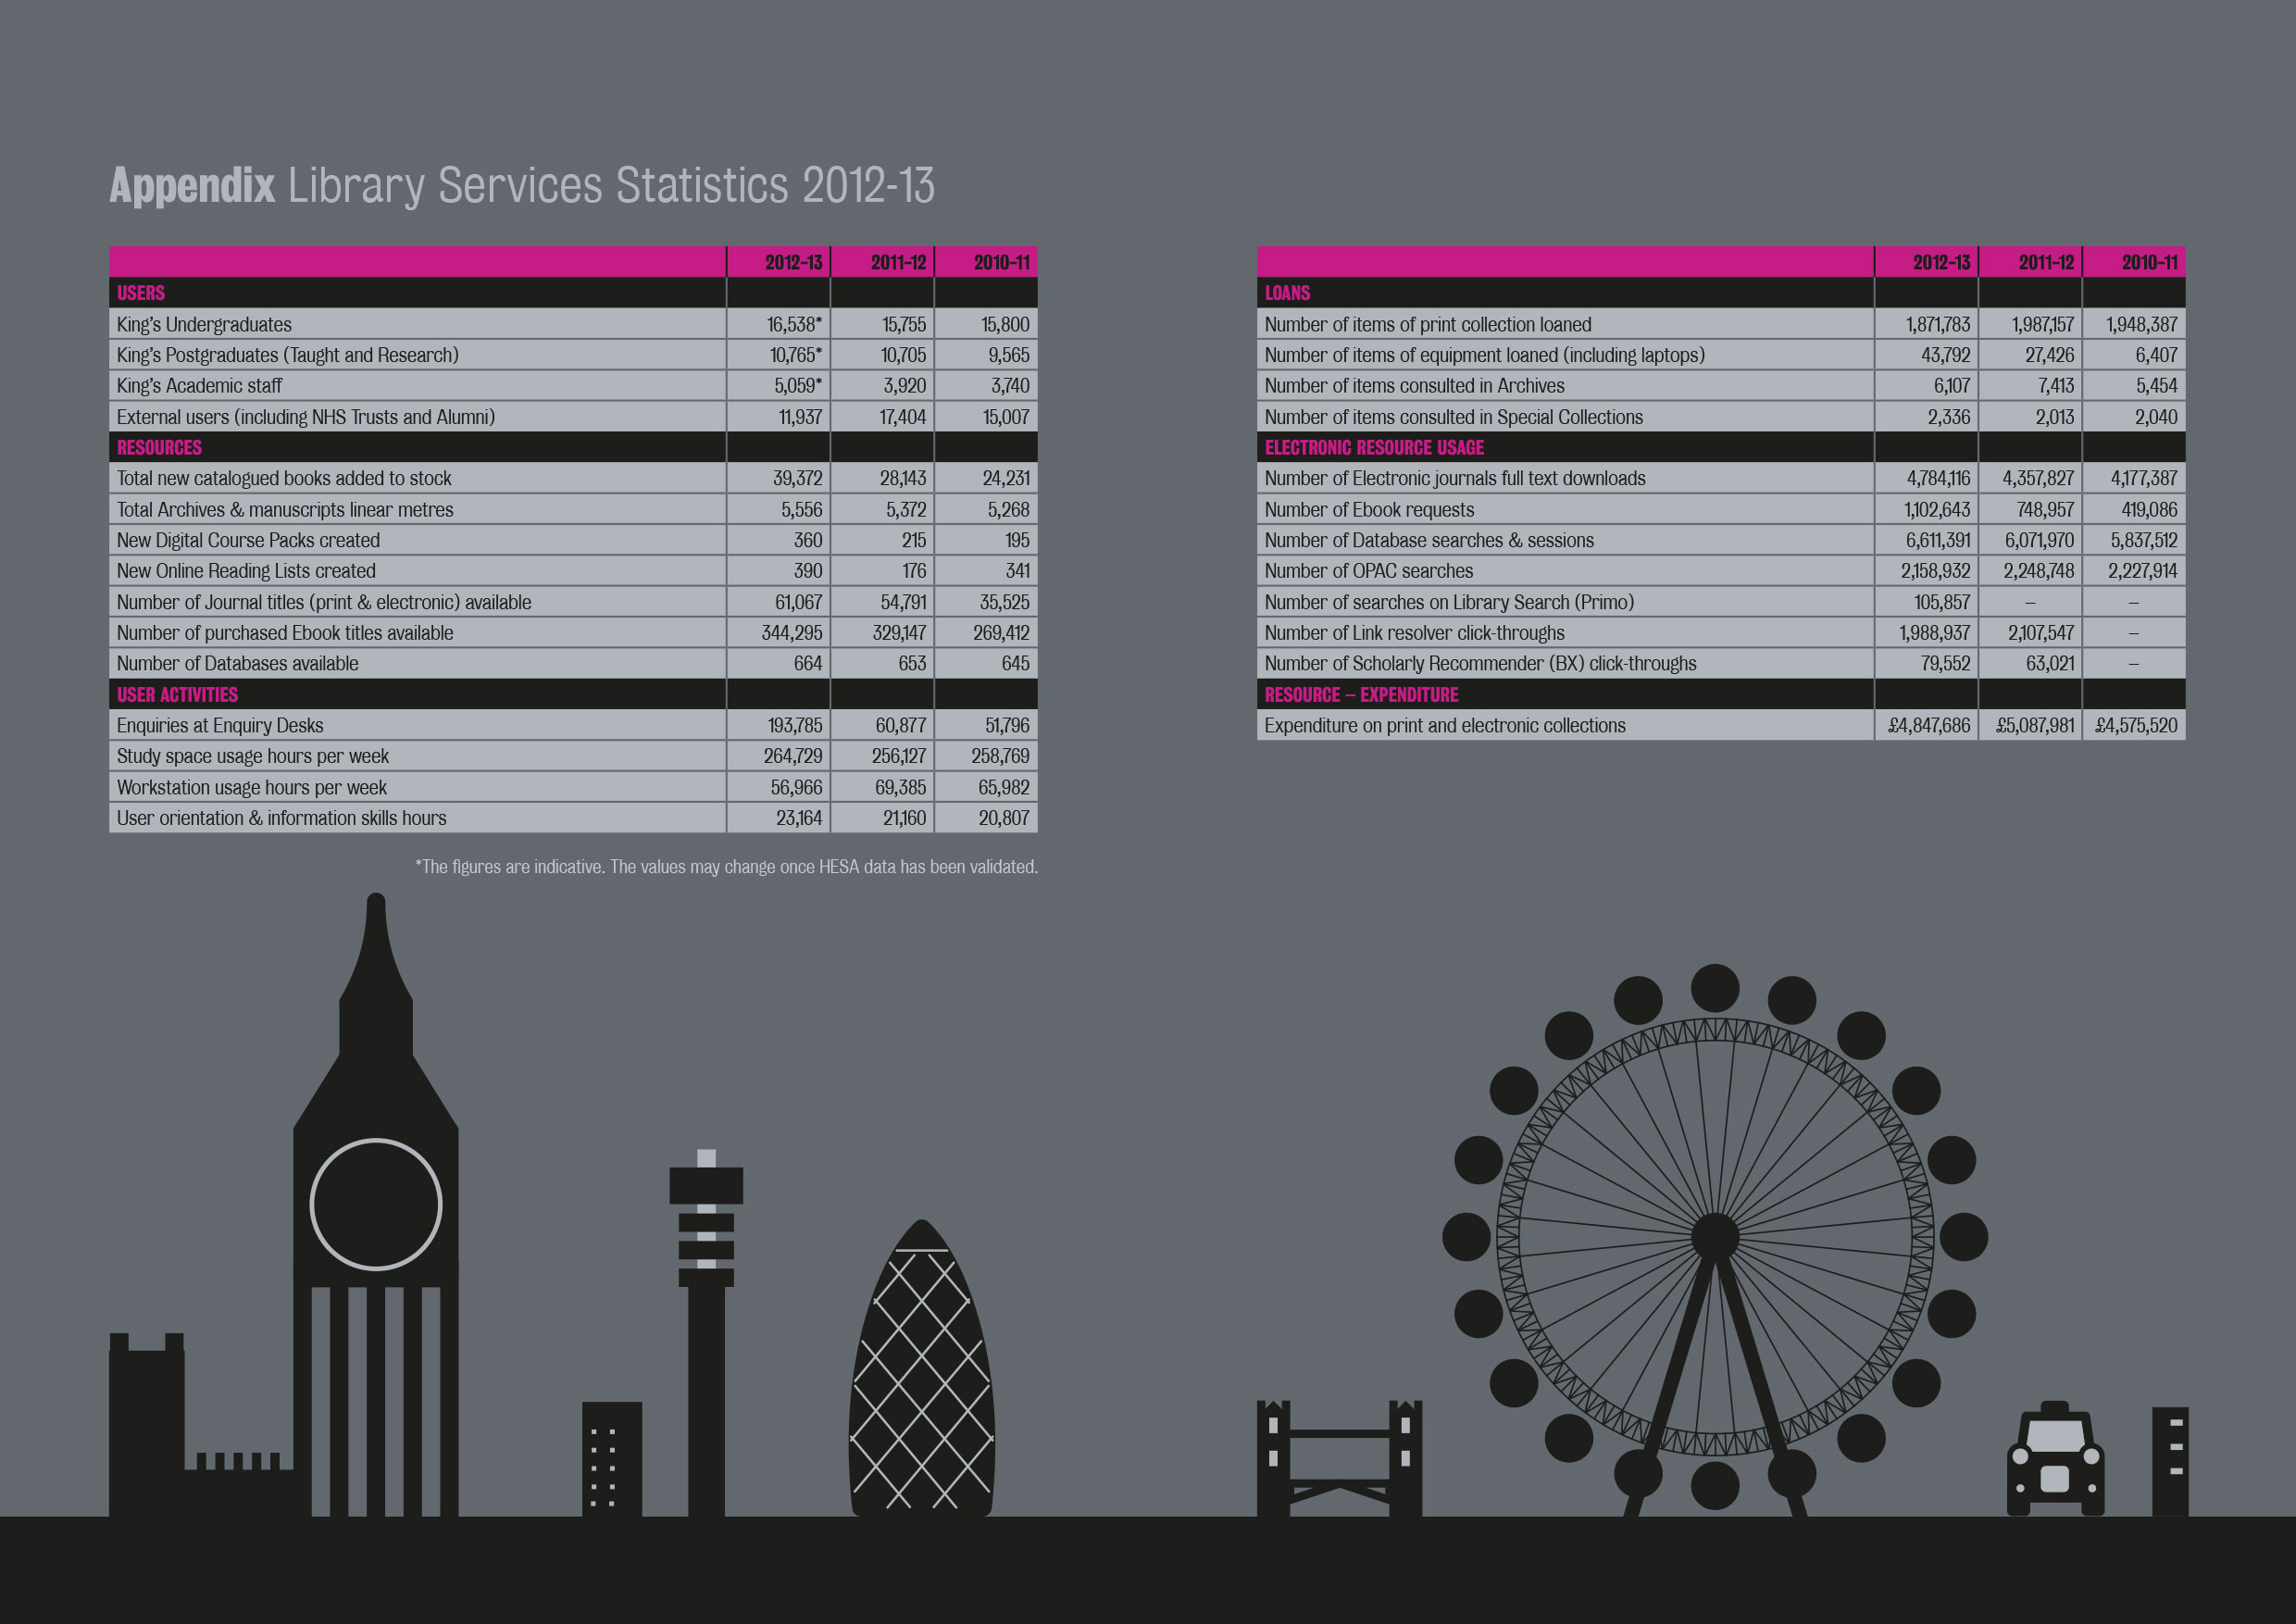 Library-Services-Annual-Report-2012-13_Proof-3-21.jpg